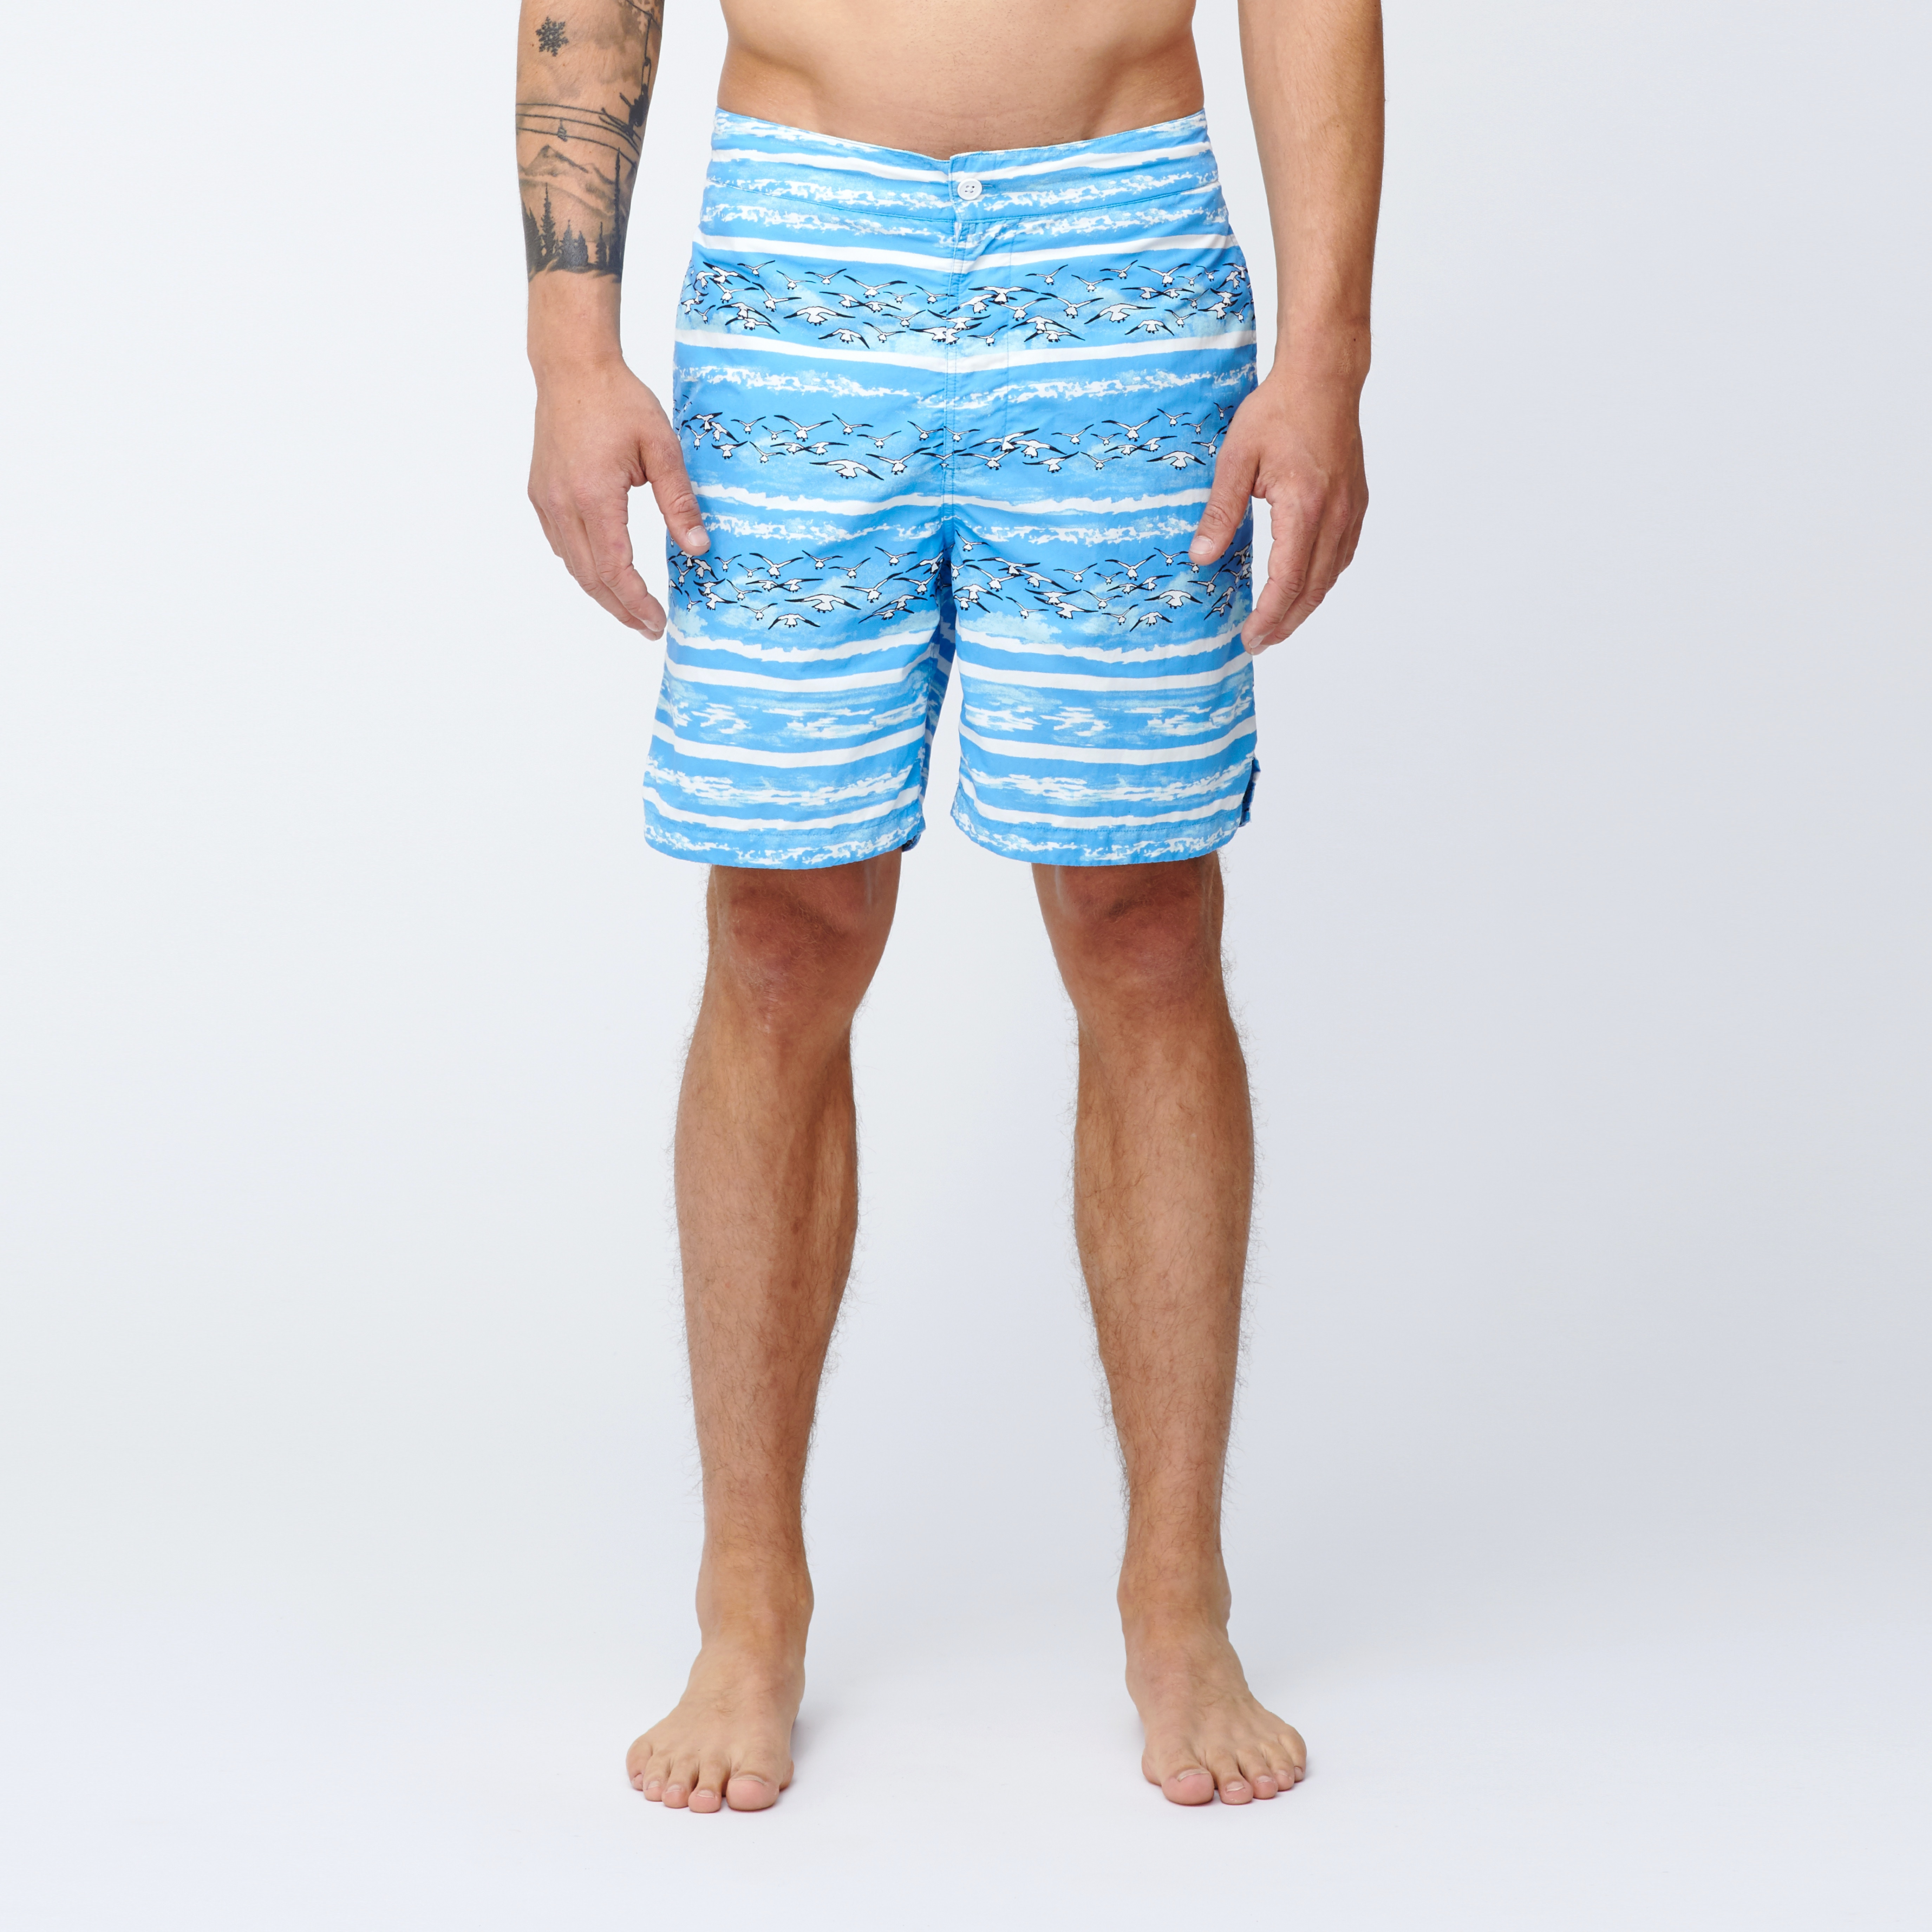 Thaddeus x Bonobos Swim Trunks 7""